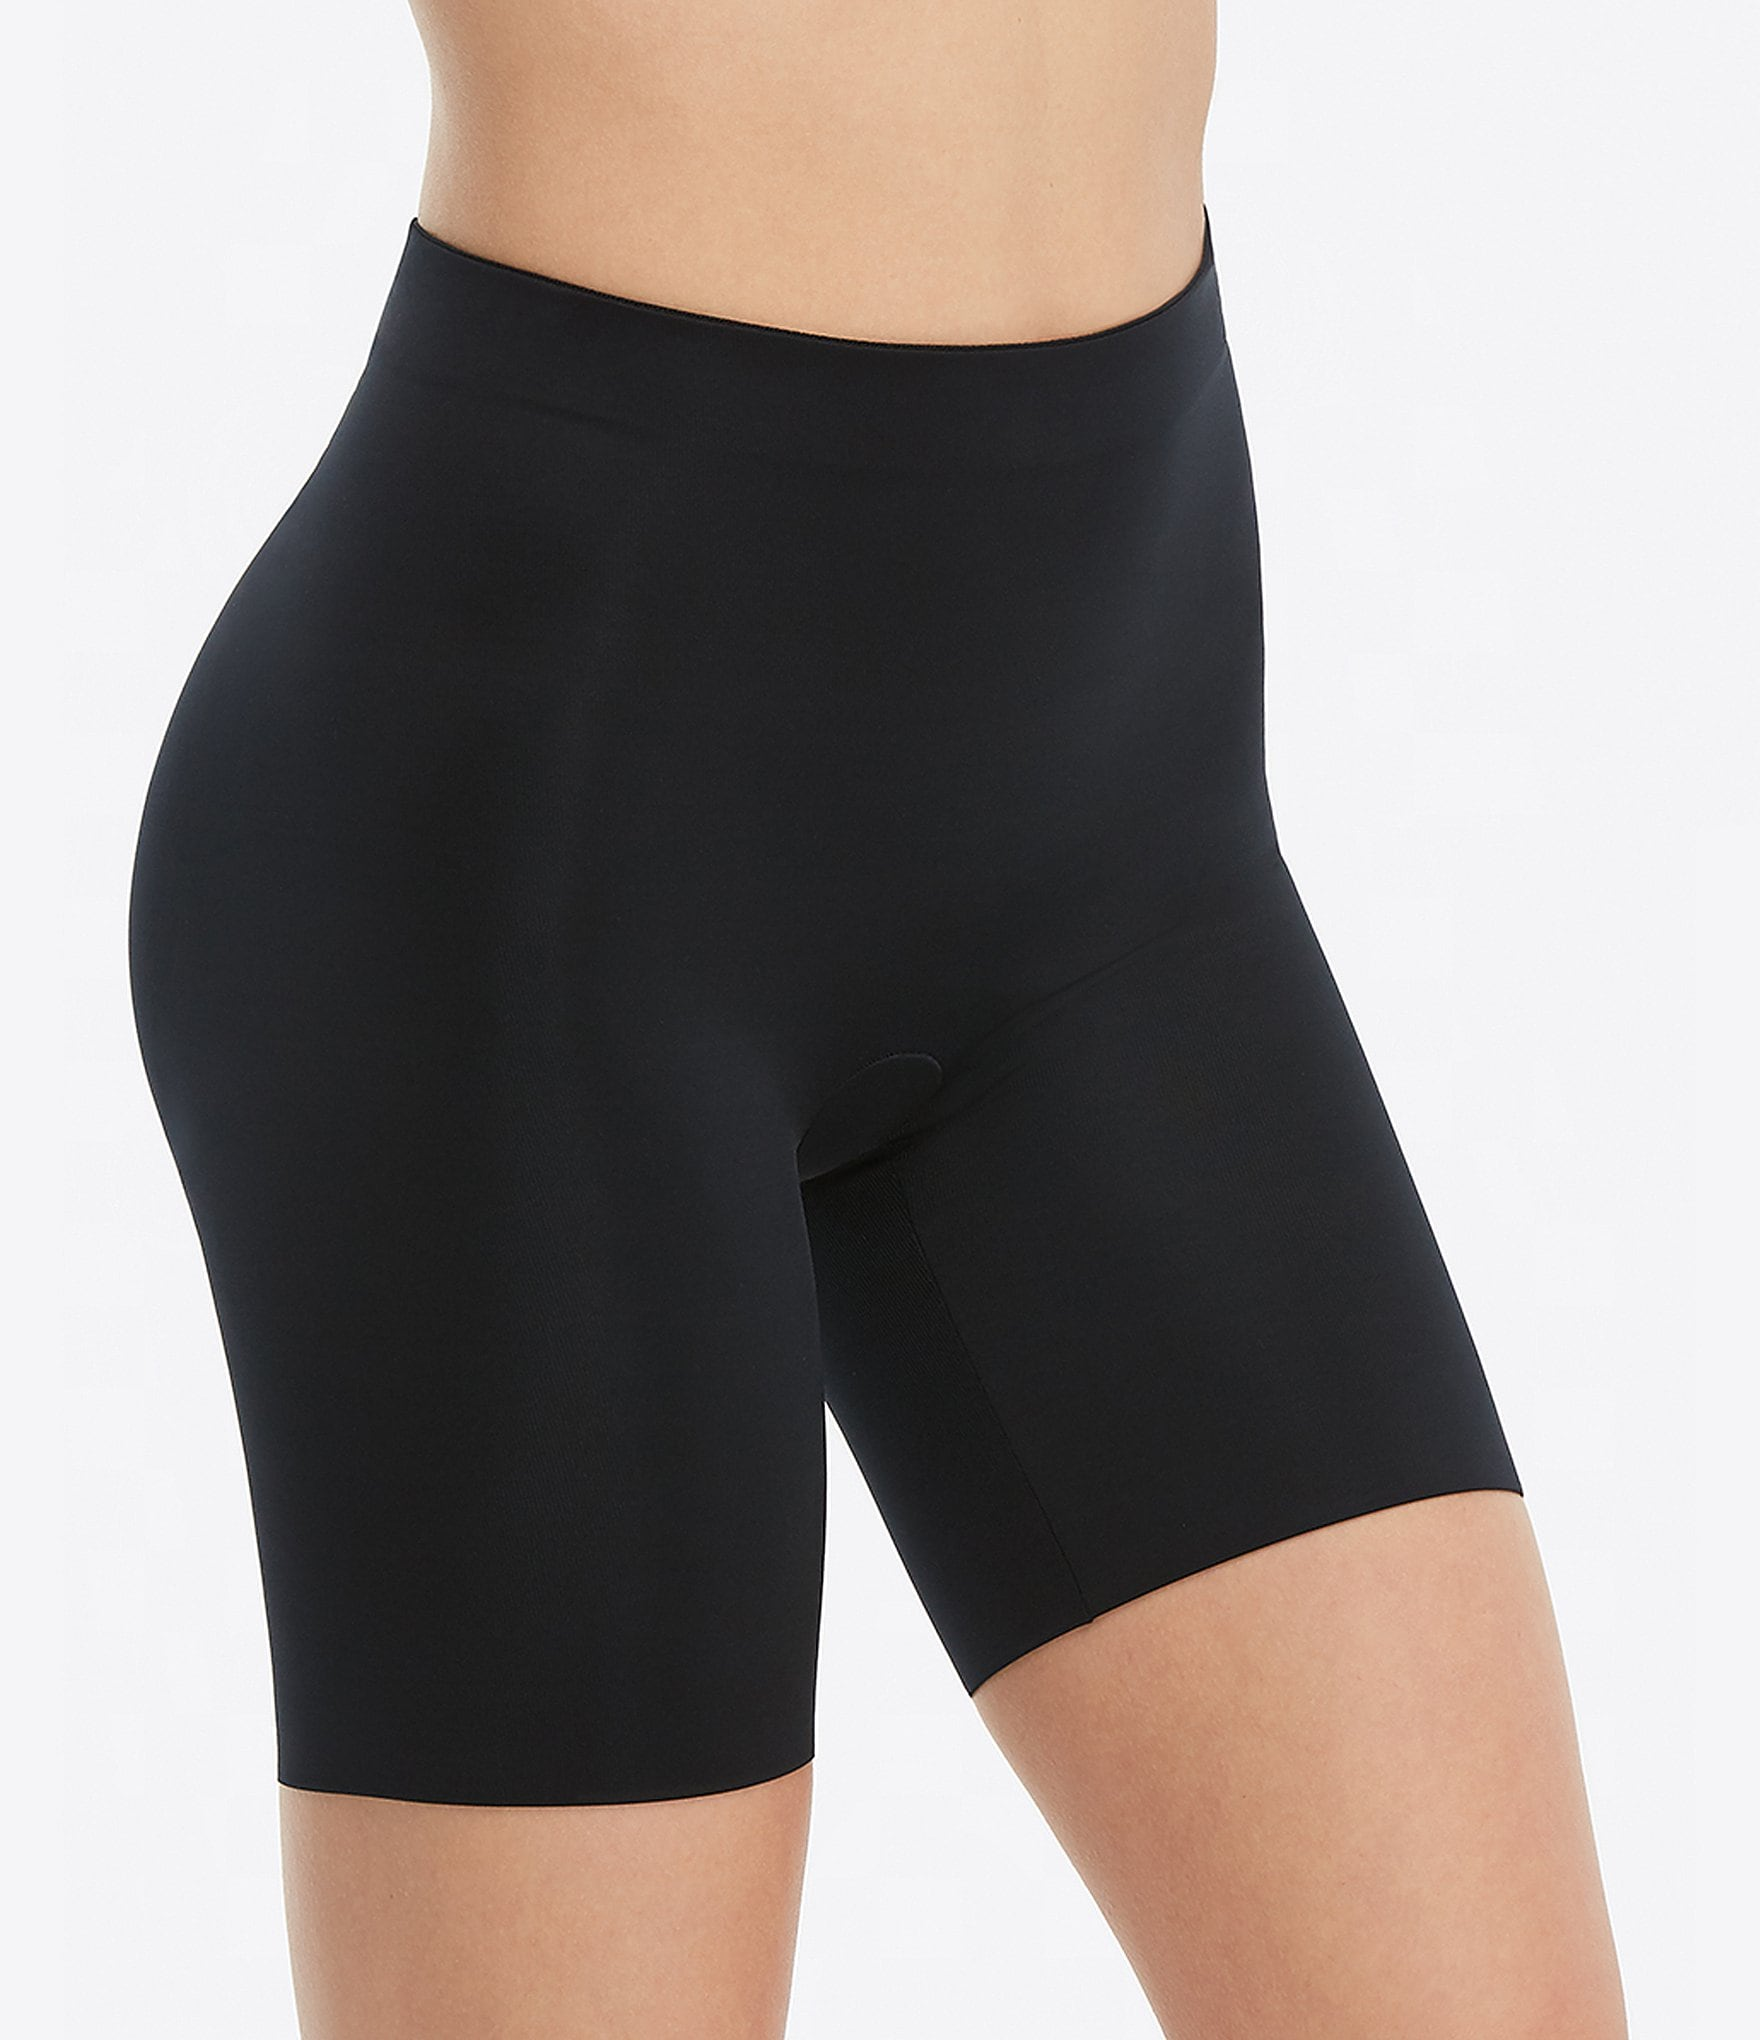 Suit Your Fancy Booty Booster Mid Thigh Shaper by Spanx